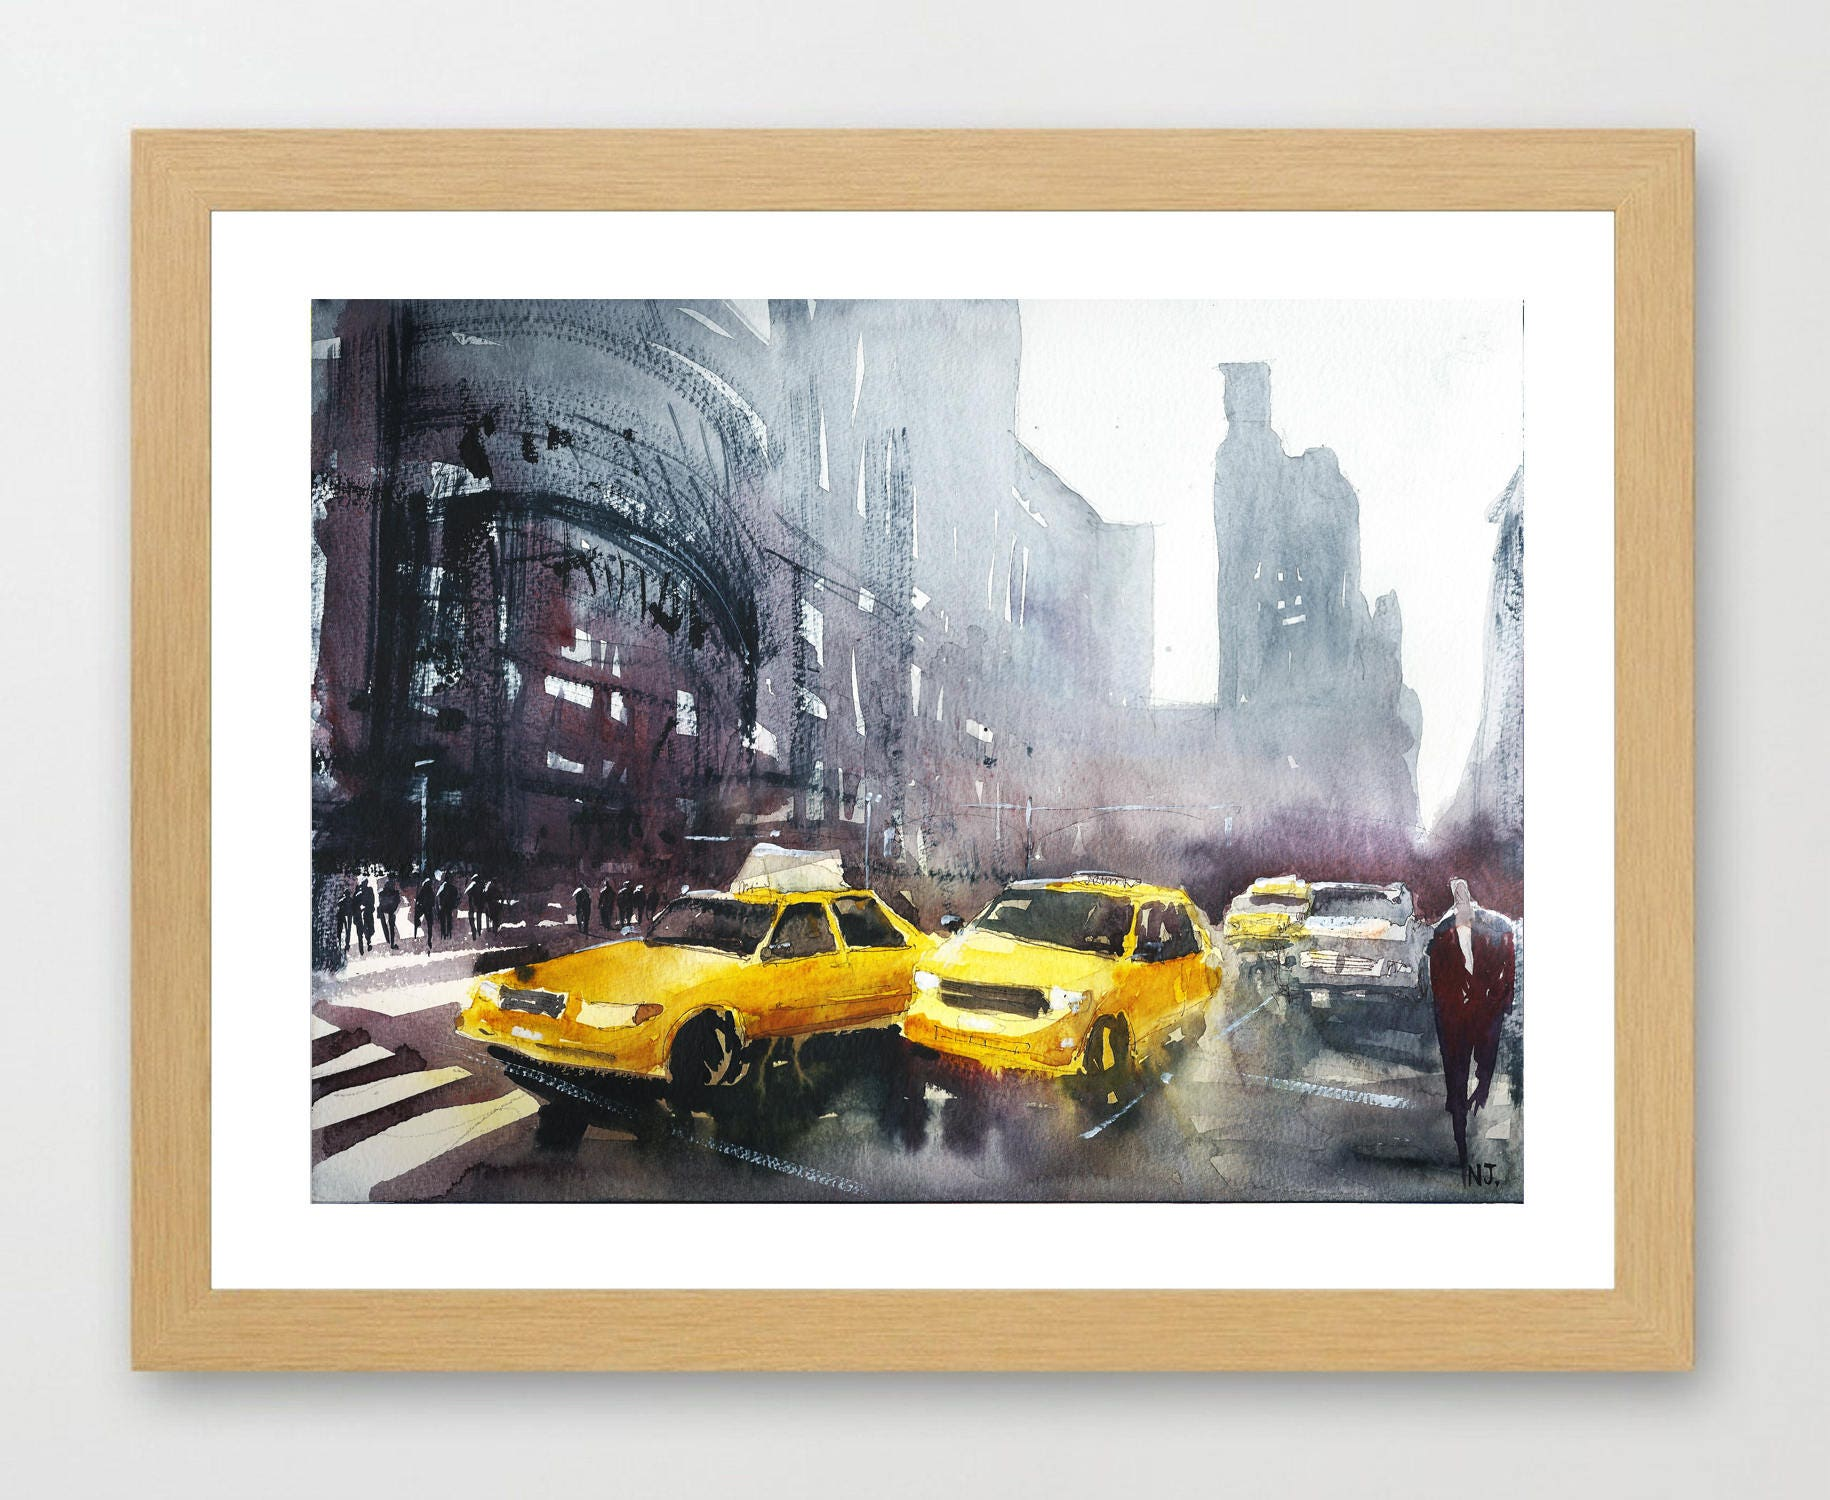 peinture de rue de new york jaune taxis aquarelle avec les etsy. Black Bedroom Furniture Sets. Home Design Ideas